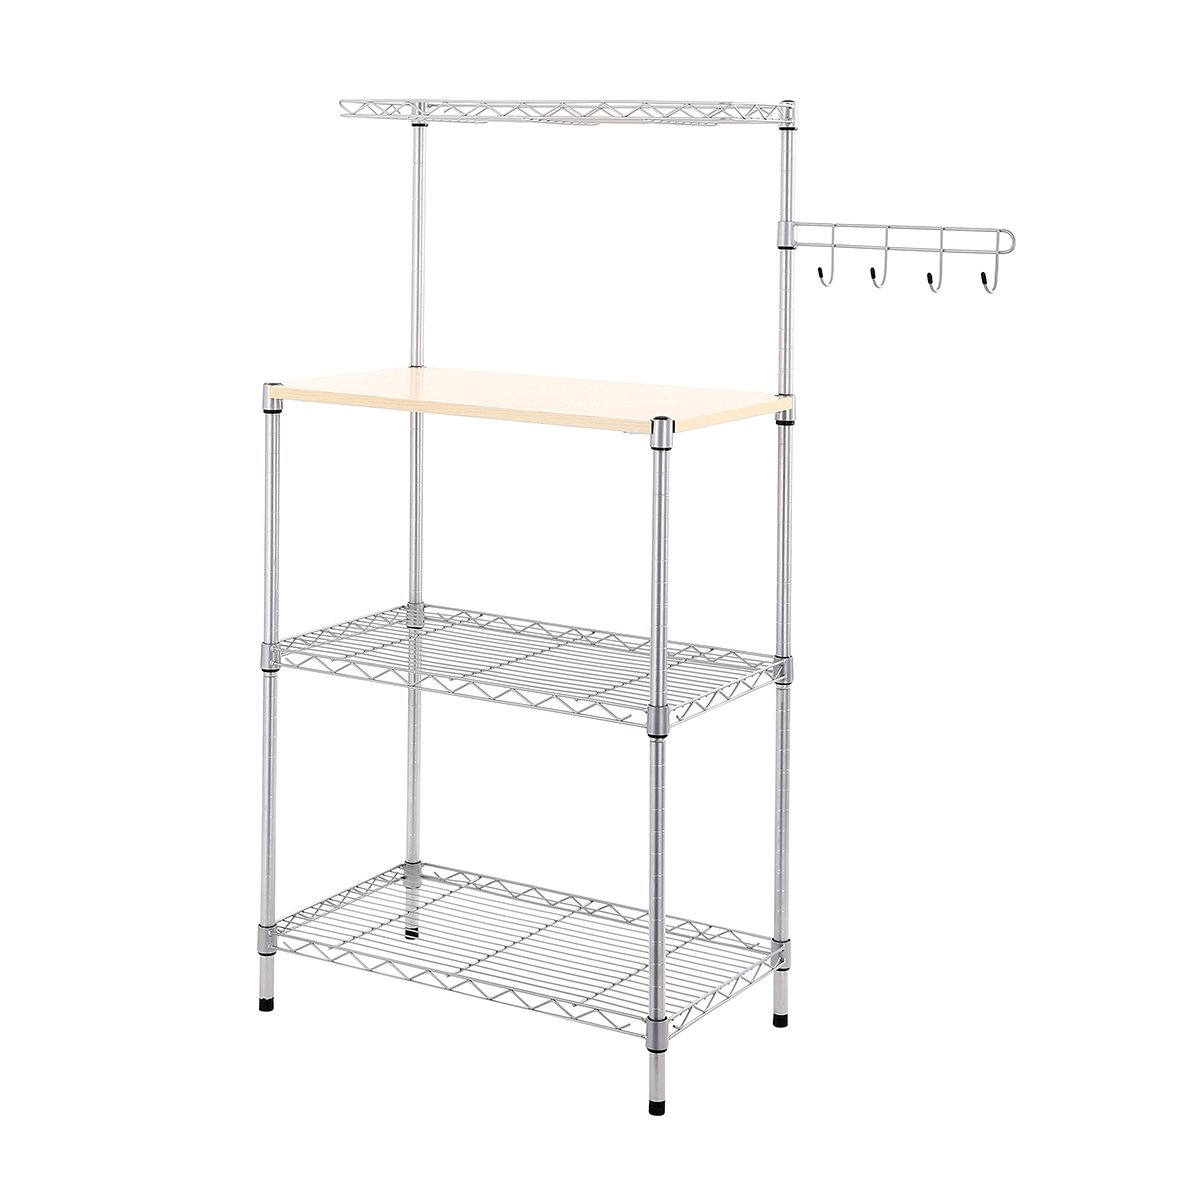 BuyHive Bakers Rack 4-Shelf Home Dining Microwave Stand Kitchen Island Organizer Workstation